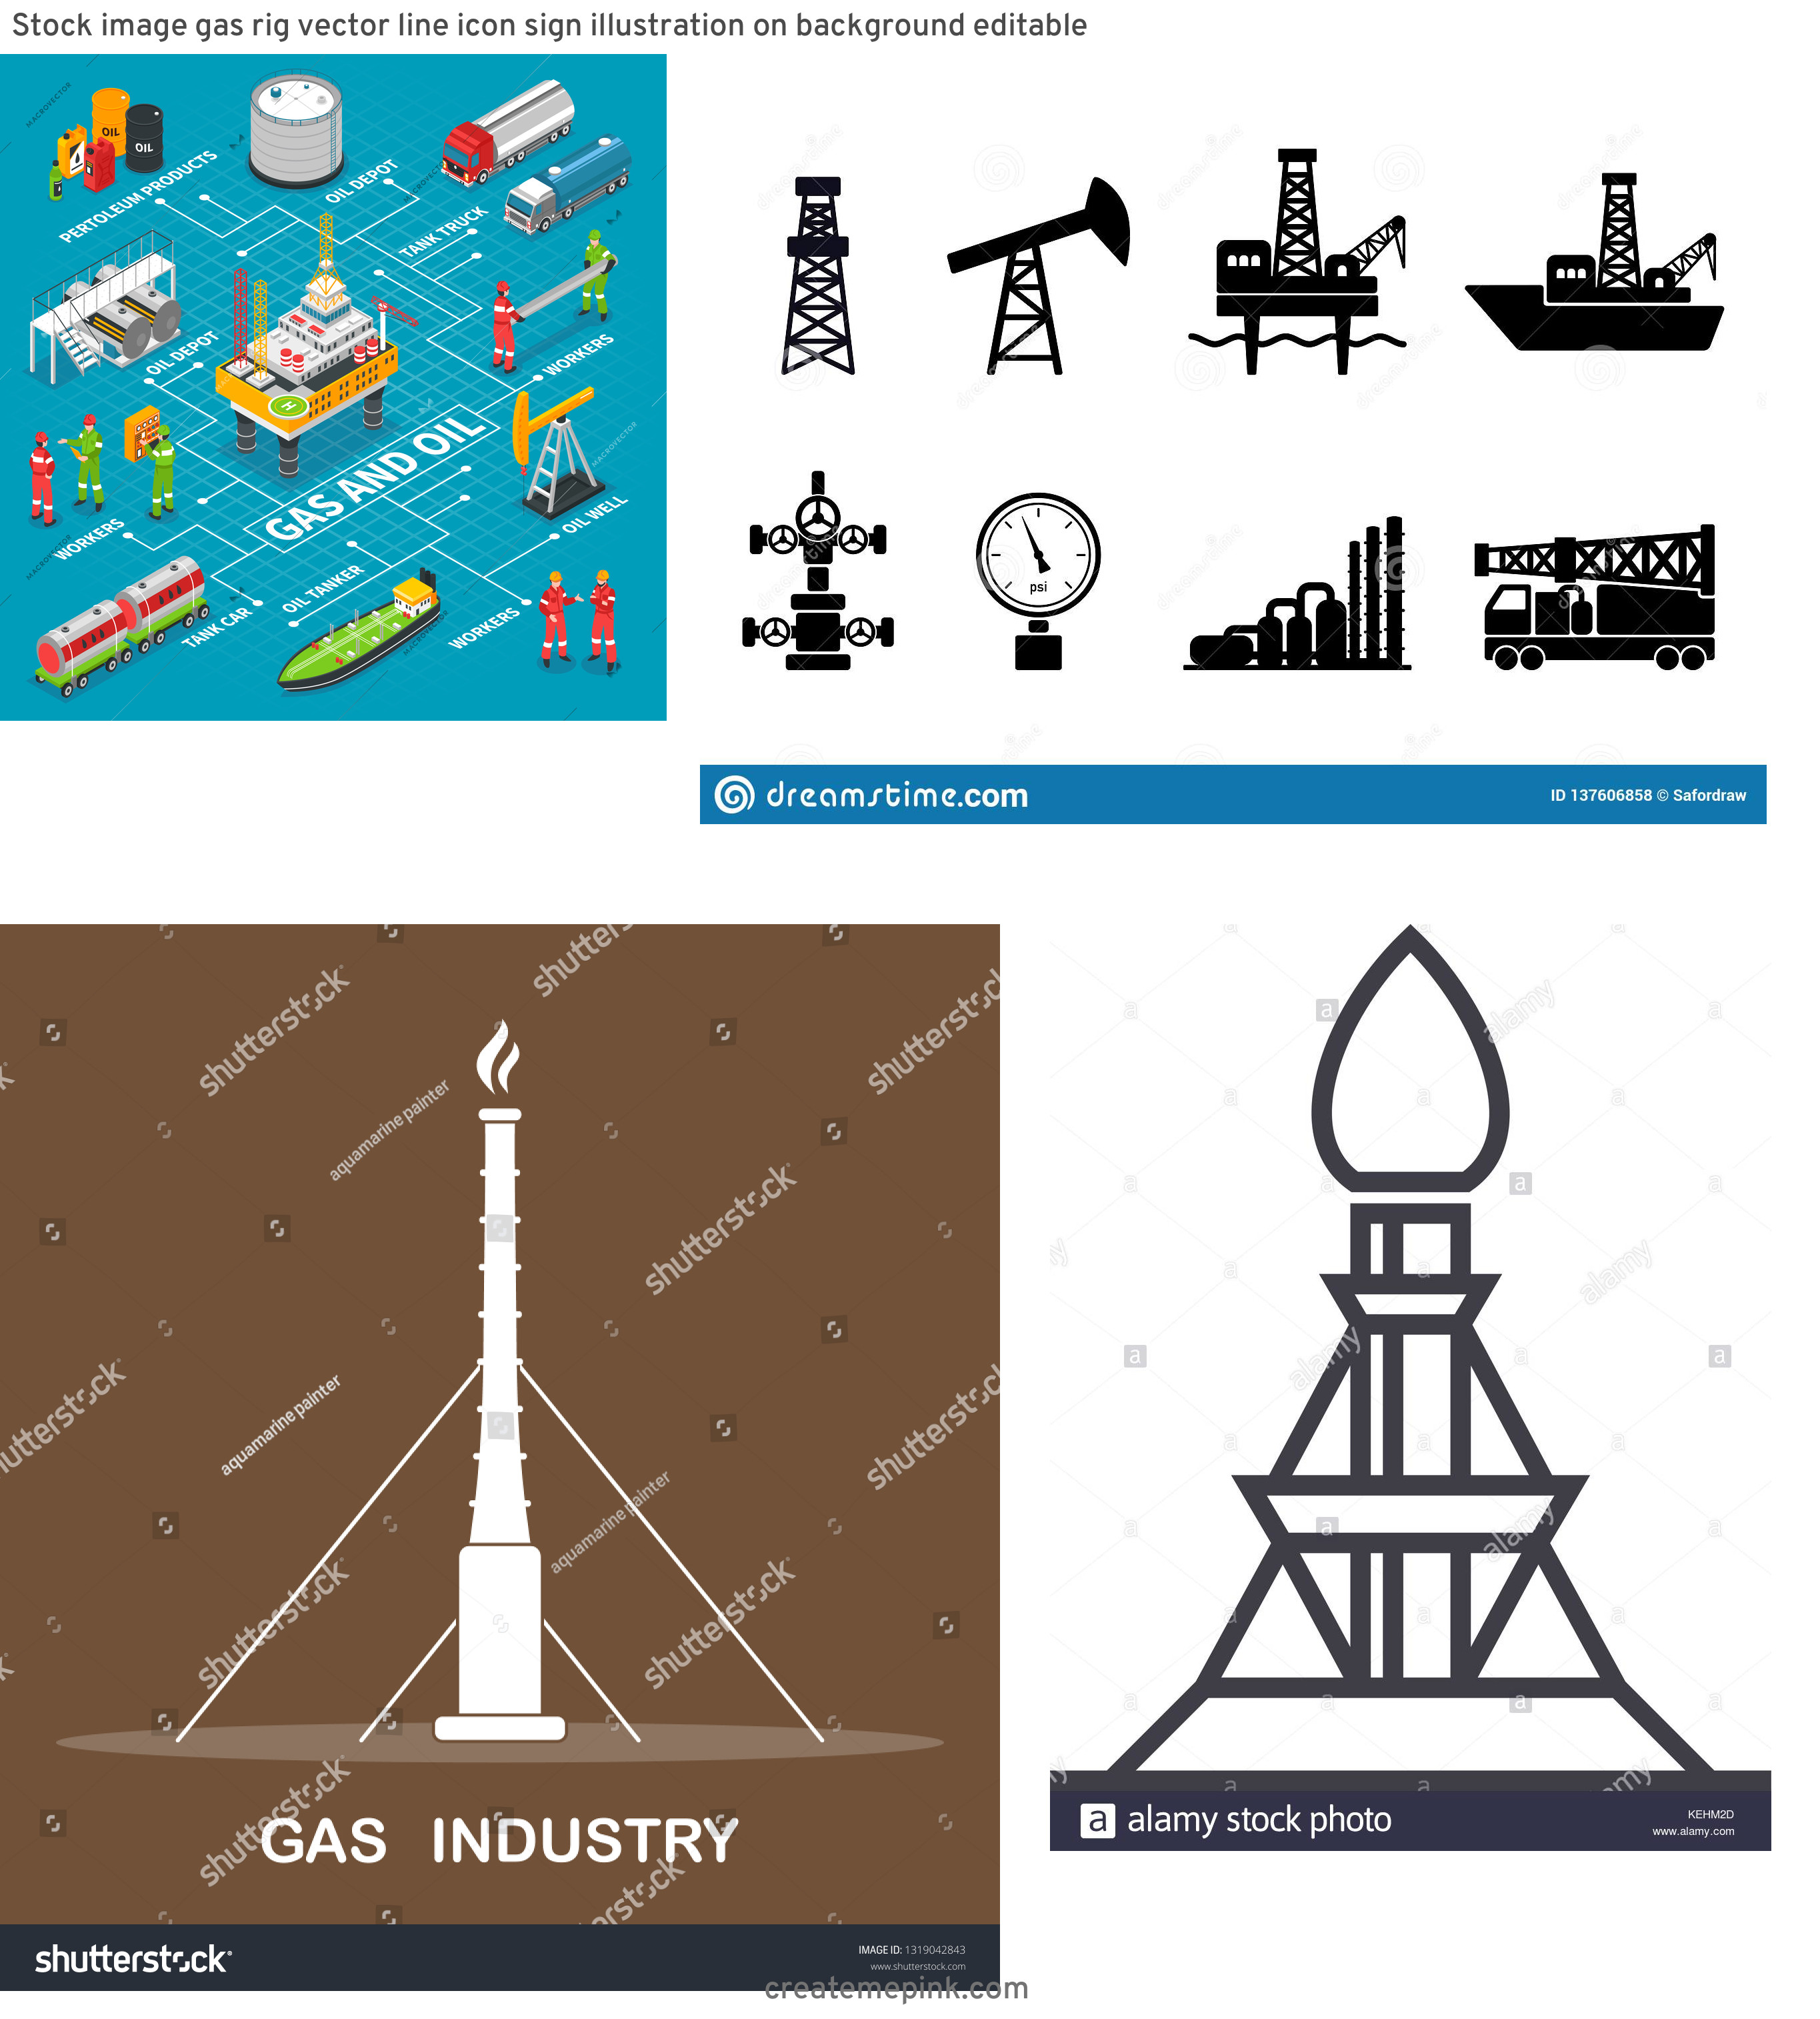 Gas Rig Vector: Stock Image Gas Rig Vector Line Icon Sign Illustration On Background Editable